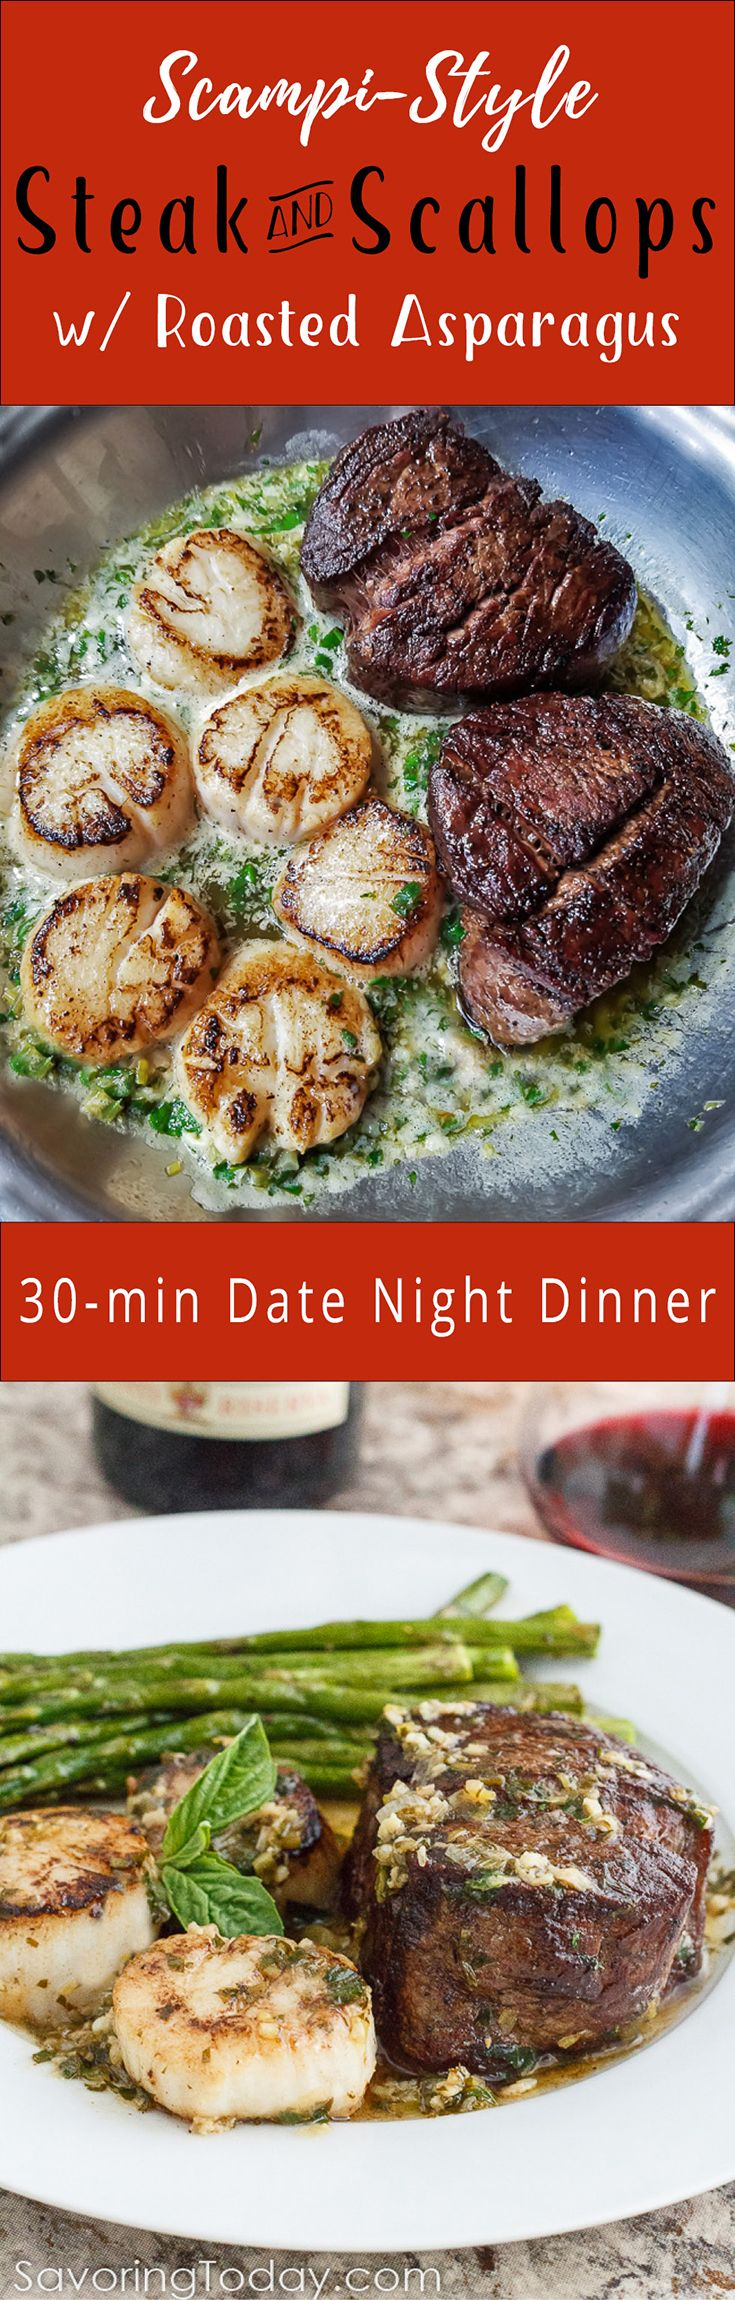 1396 best images about DINNER RECIPE IDEAS on Pinterest | Healthy ...